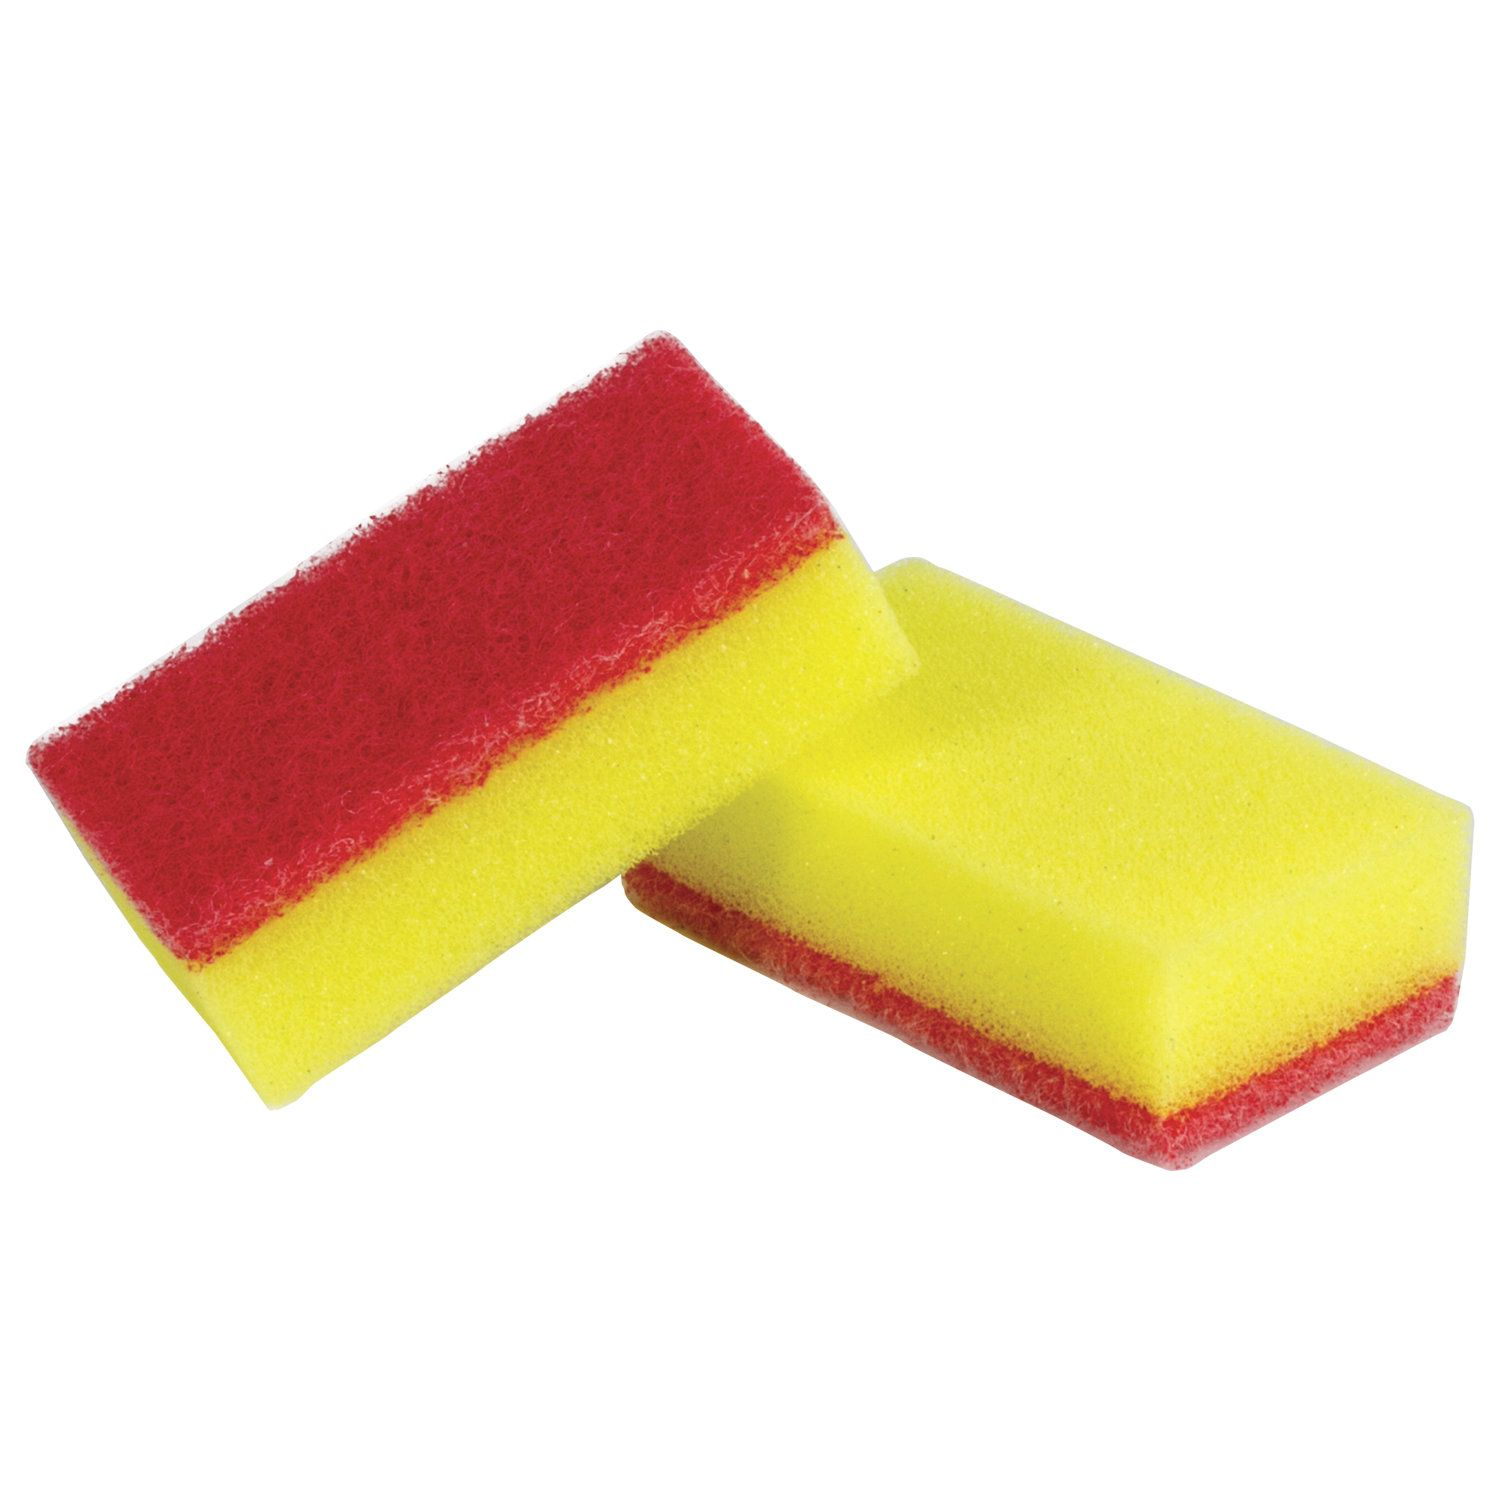 LYUBASHA / Household scouring sponges - foam rubber / abrasive, 20 x 40 x 70 mm, SET 10 pcs.